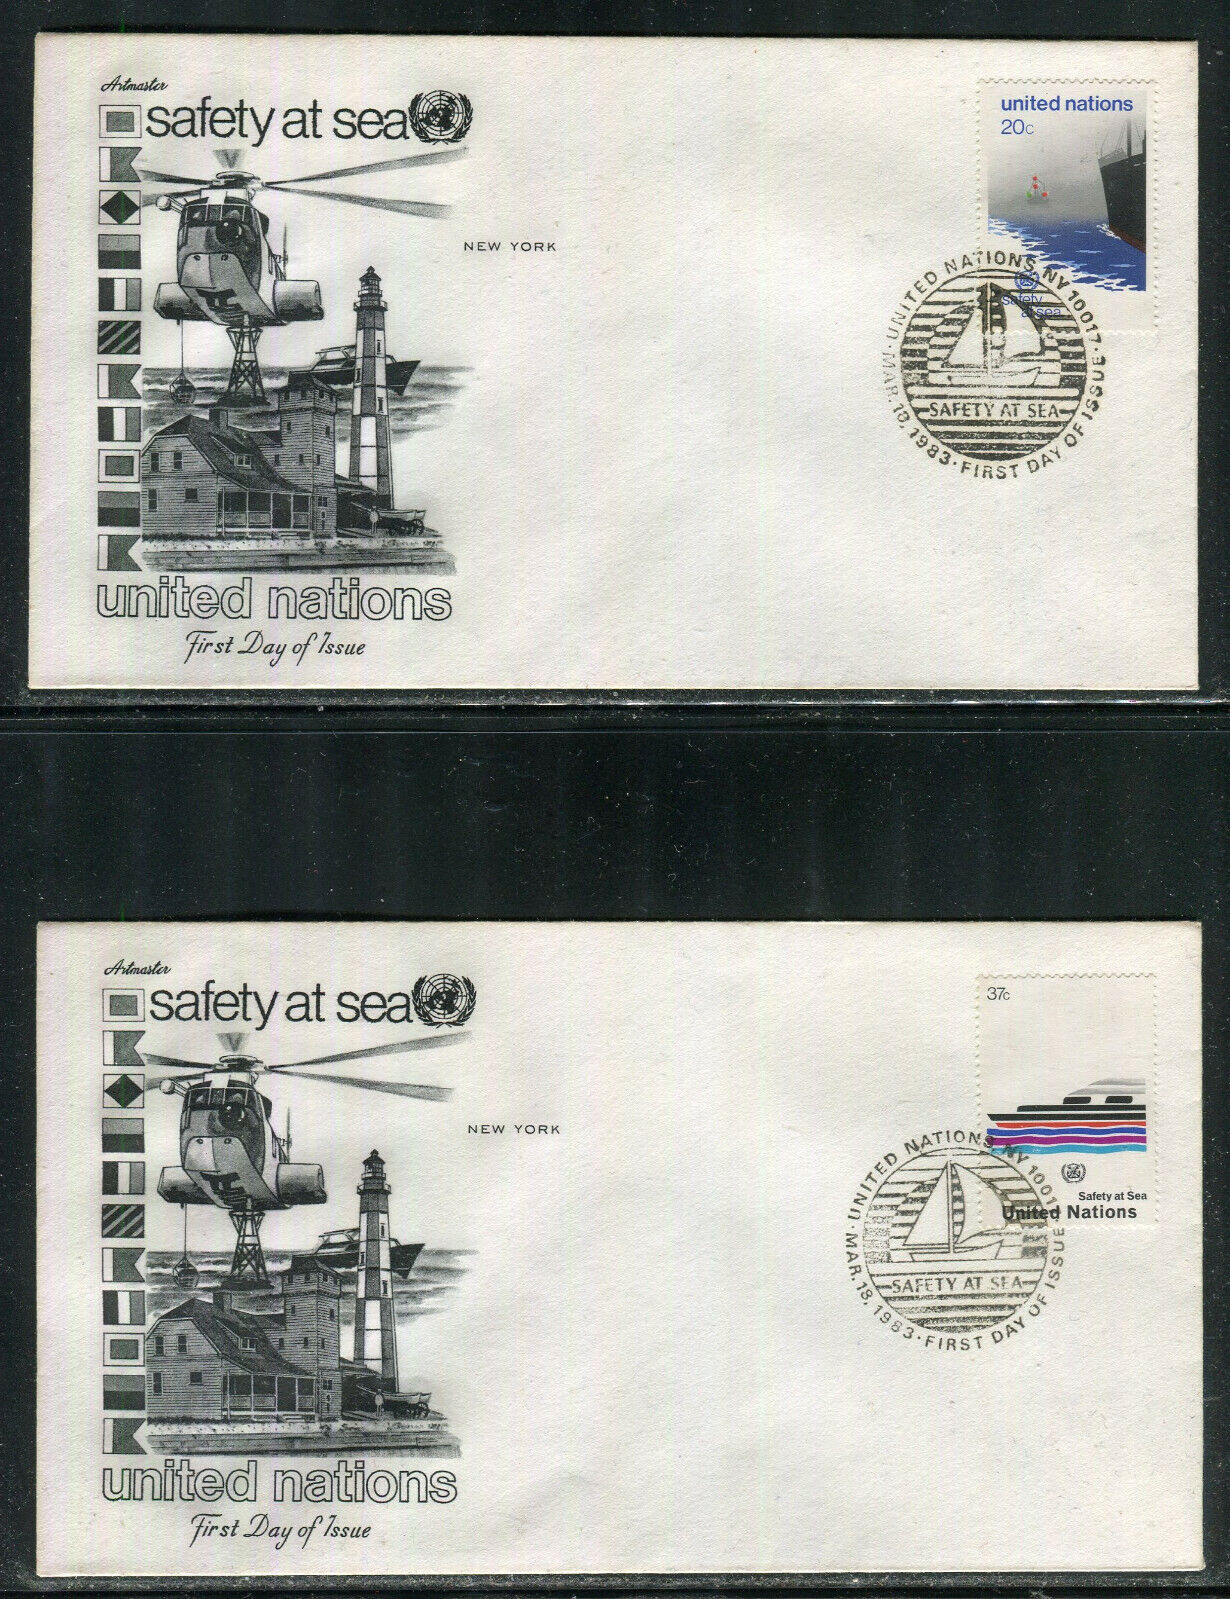 UN-New York 394-395, 1983 Safety At Sea, Artmaster FDC Set No Address - $0.89